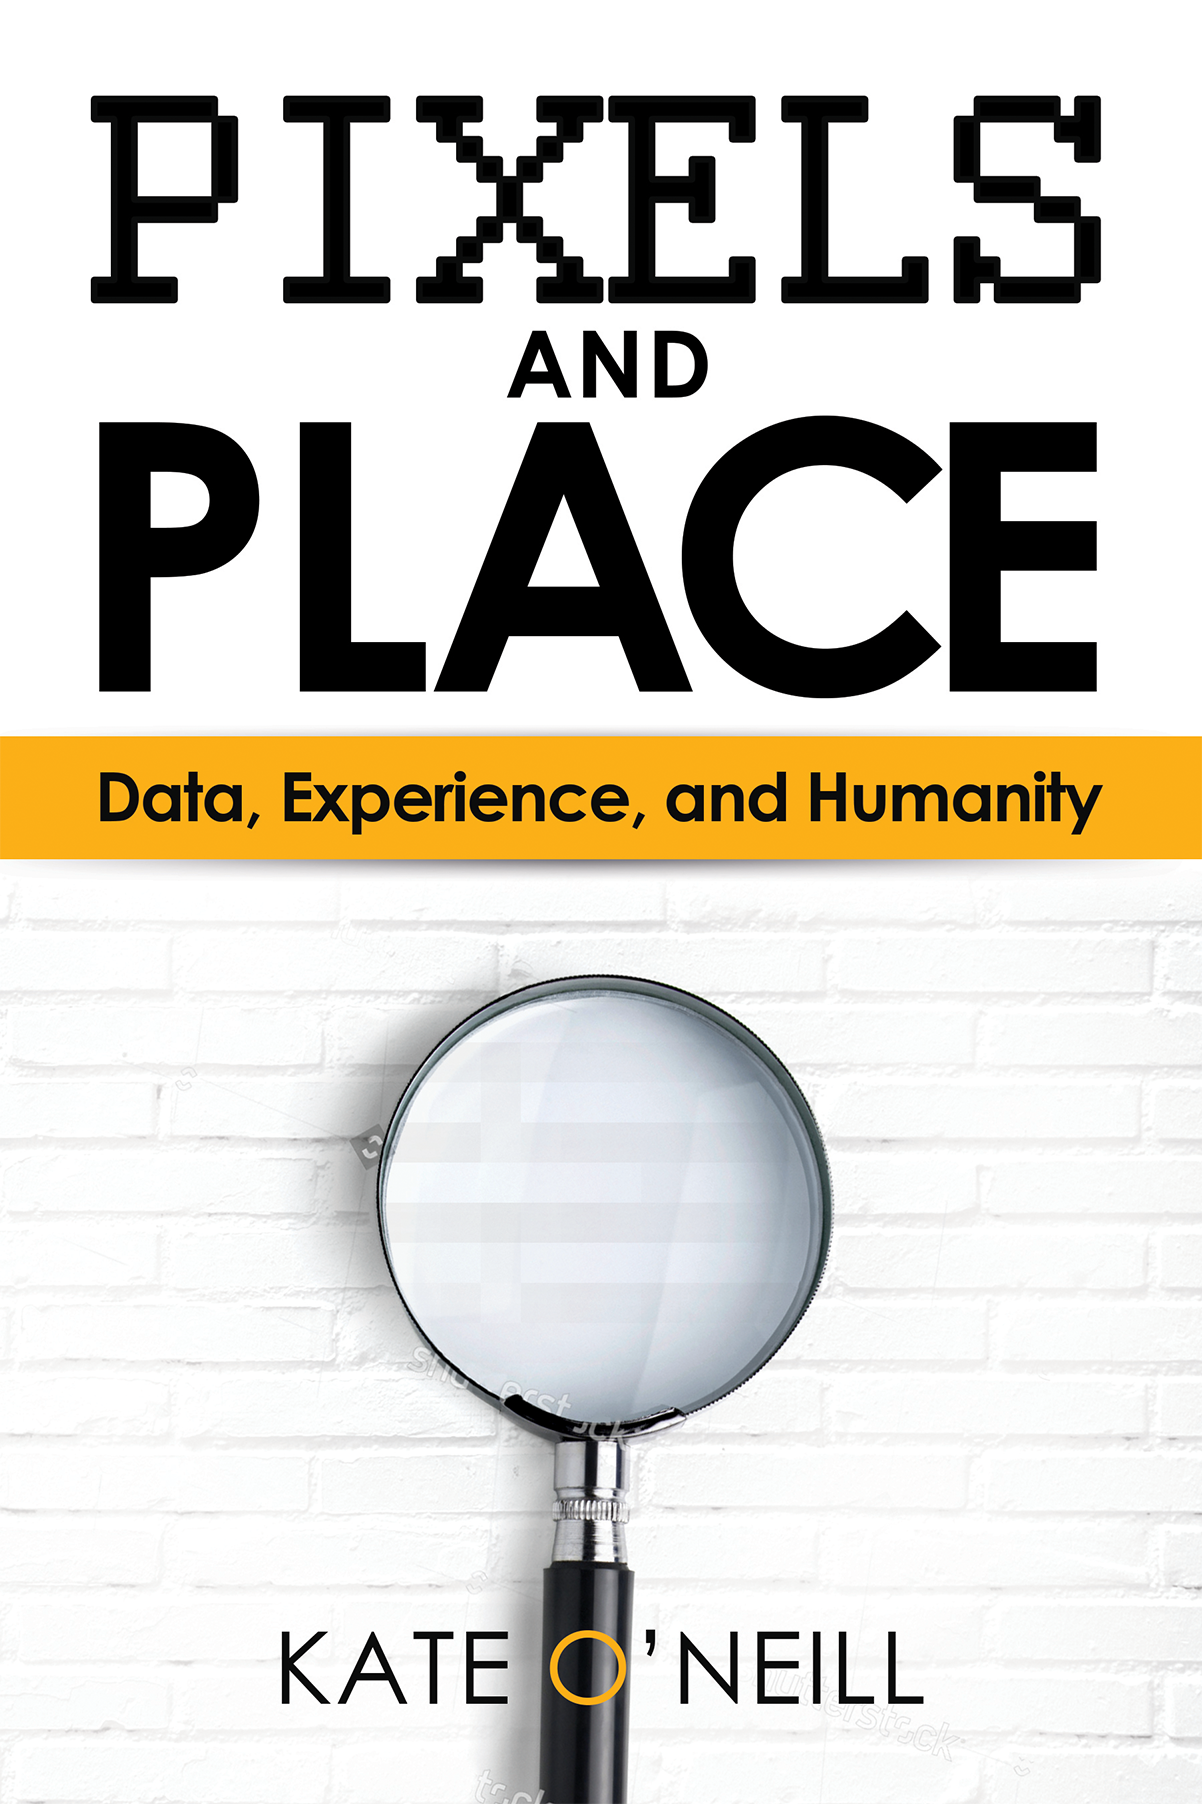 Data and tech-themed book cover